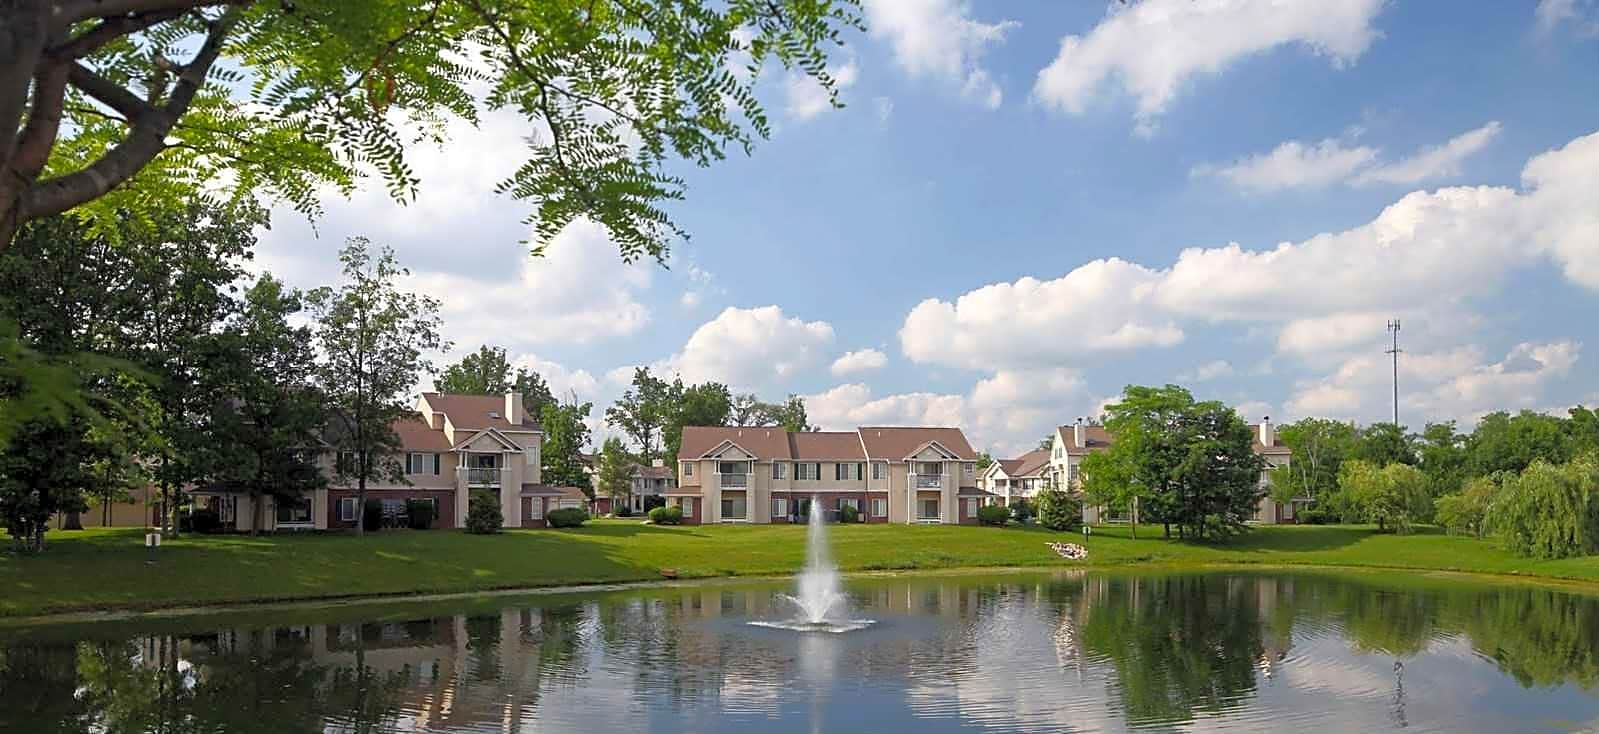 Apartments Near Ravenscroft Beauty College Windsor Oaks Apartment Homes for Ravenscroft Beauty College Students in Fort Wayne, IN